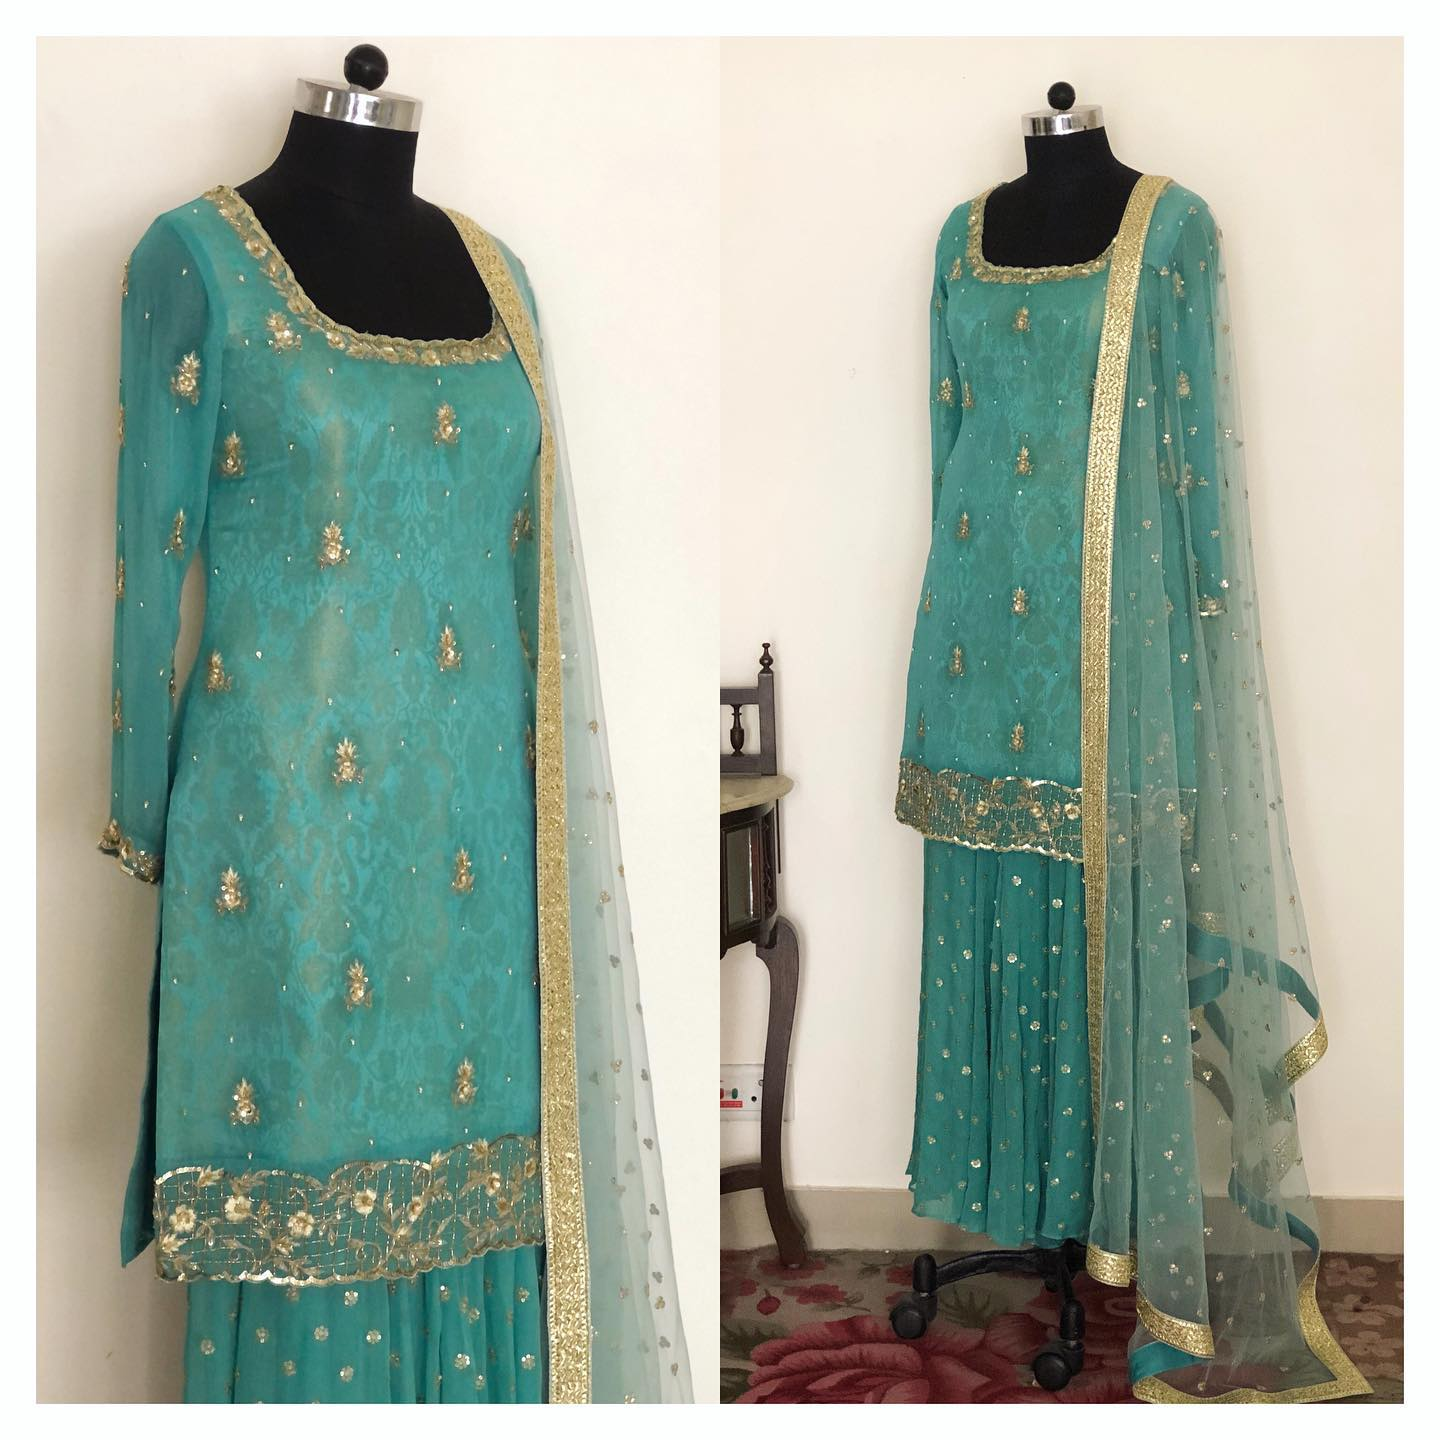 The kurta is hand embroidered using sequins zari cut dana and tiny pearls on a shimmer georgette with brocade fabric as lining beneath to add more texture and design. The sharara is made in georgette with sequins flower scattered all over it.  To customise/order DM  or WhatsApp at +918527463626 or Email at shivani@intricado.com. 2021-08-20